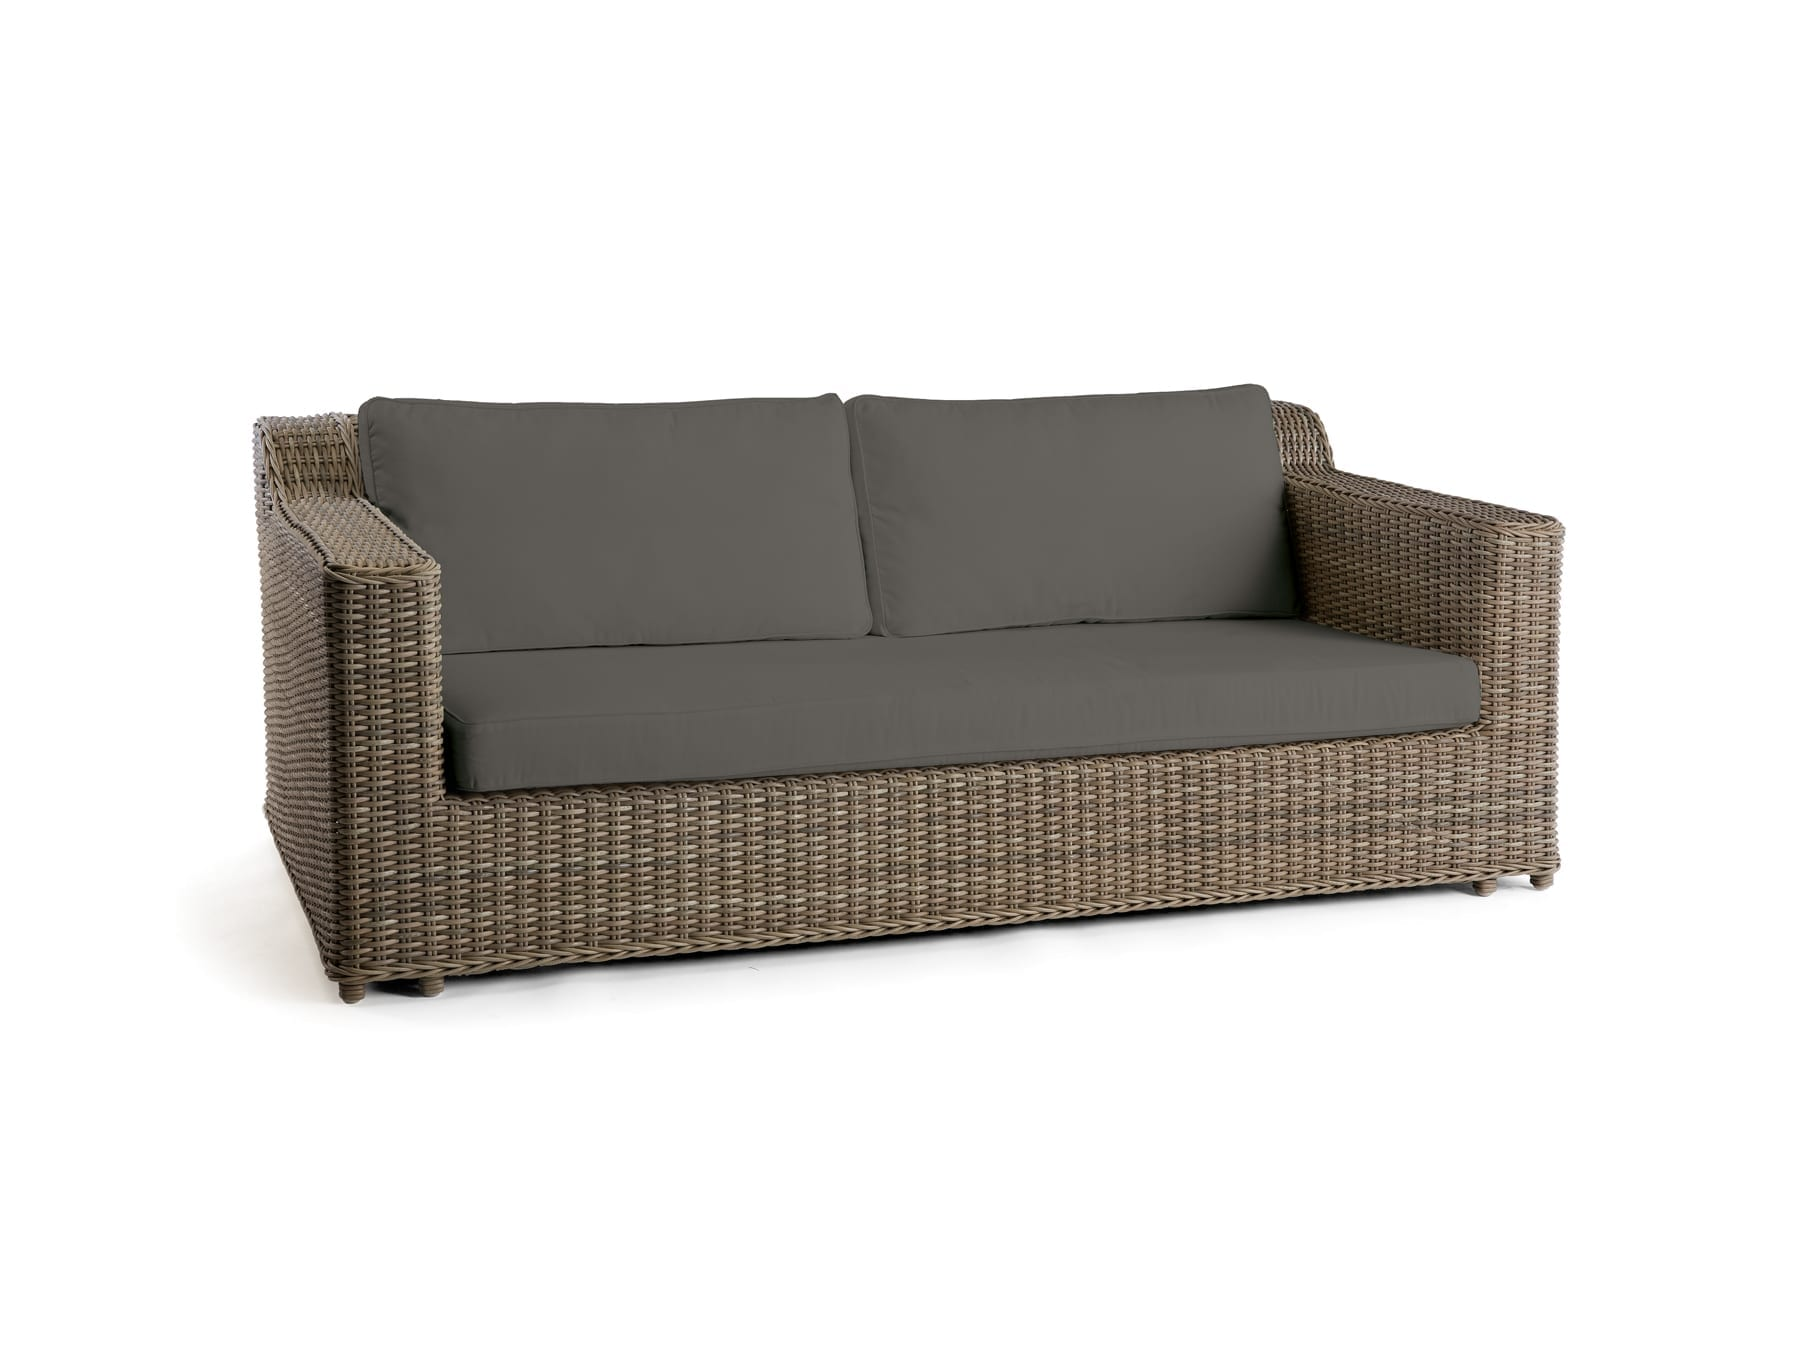 Manutti San Diego 2.5 Seater Sofa available at McKenzie & Willis